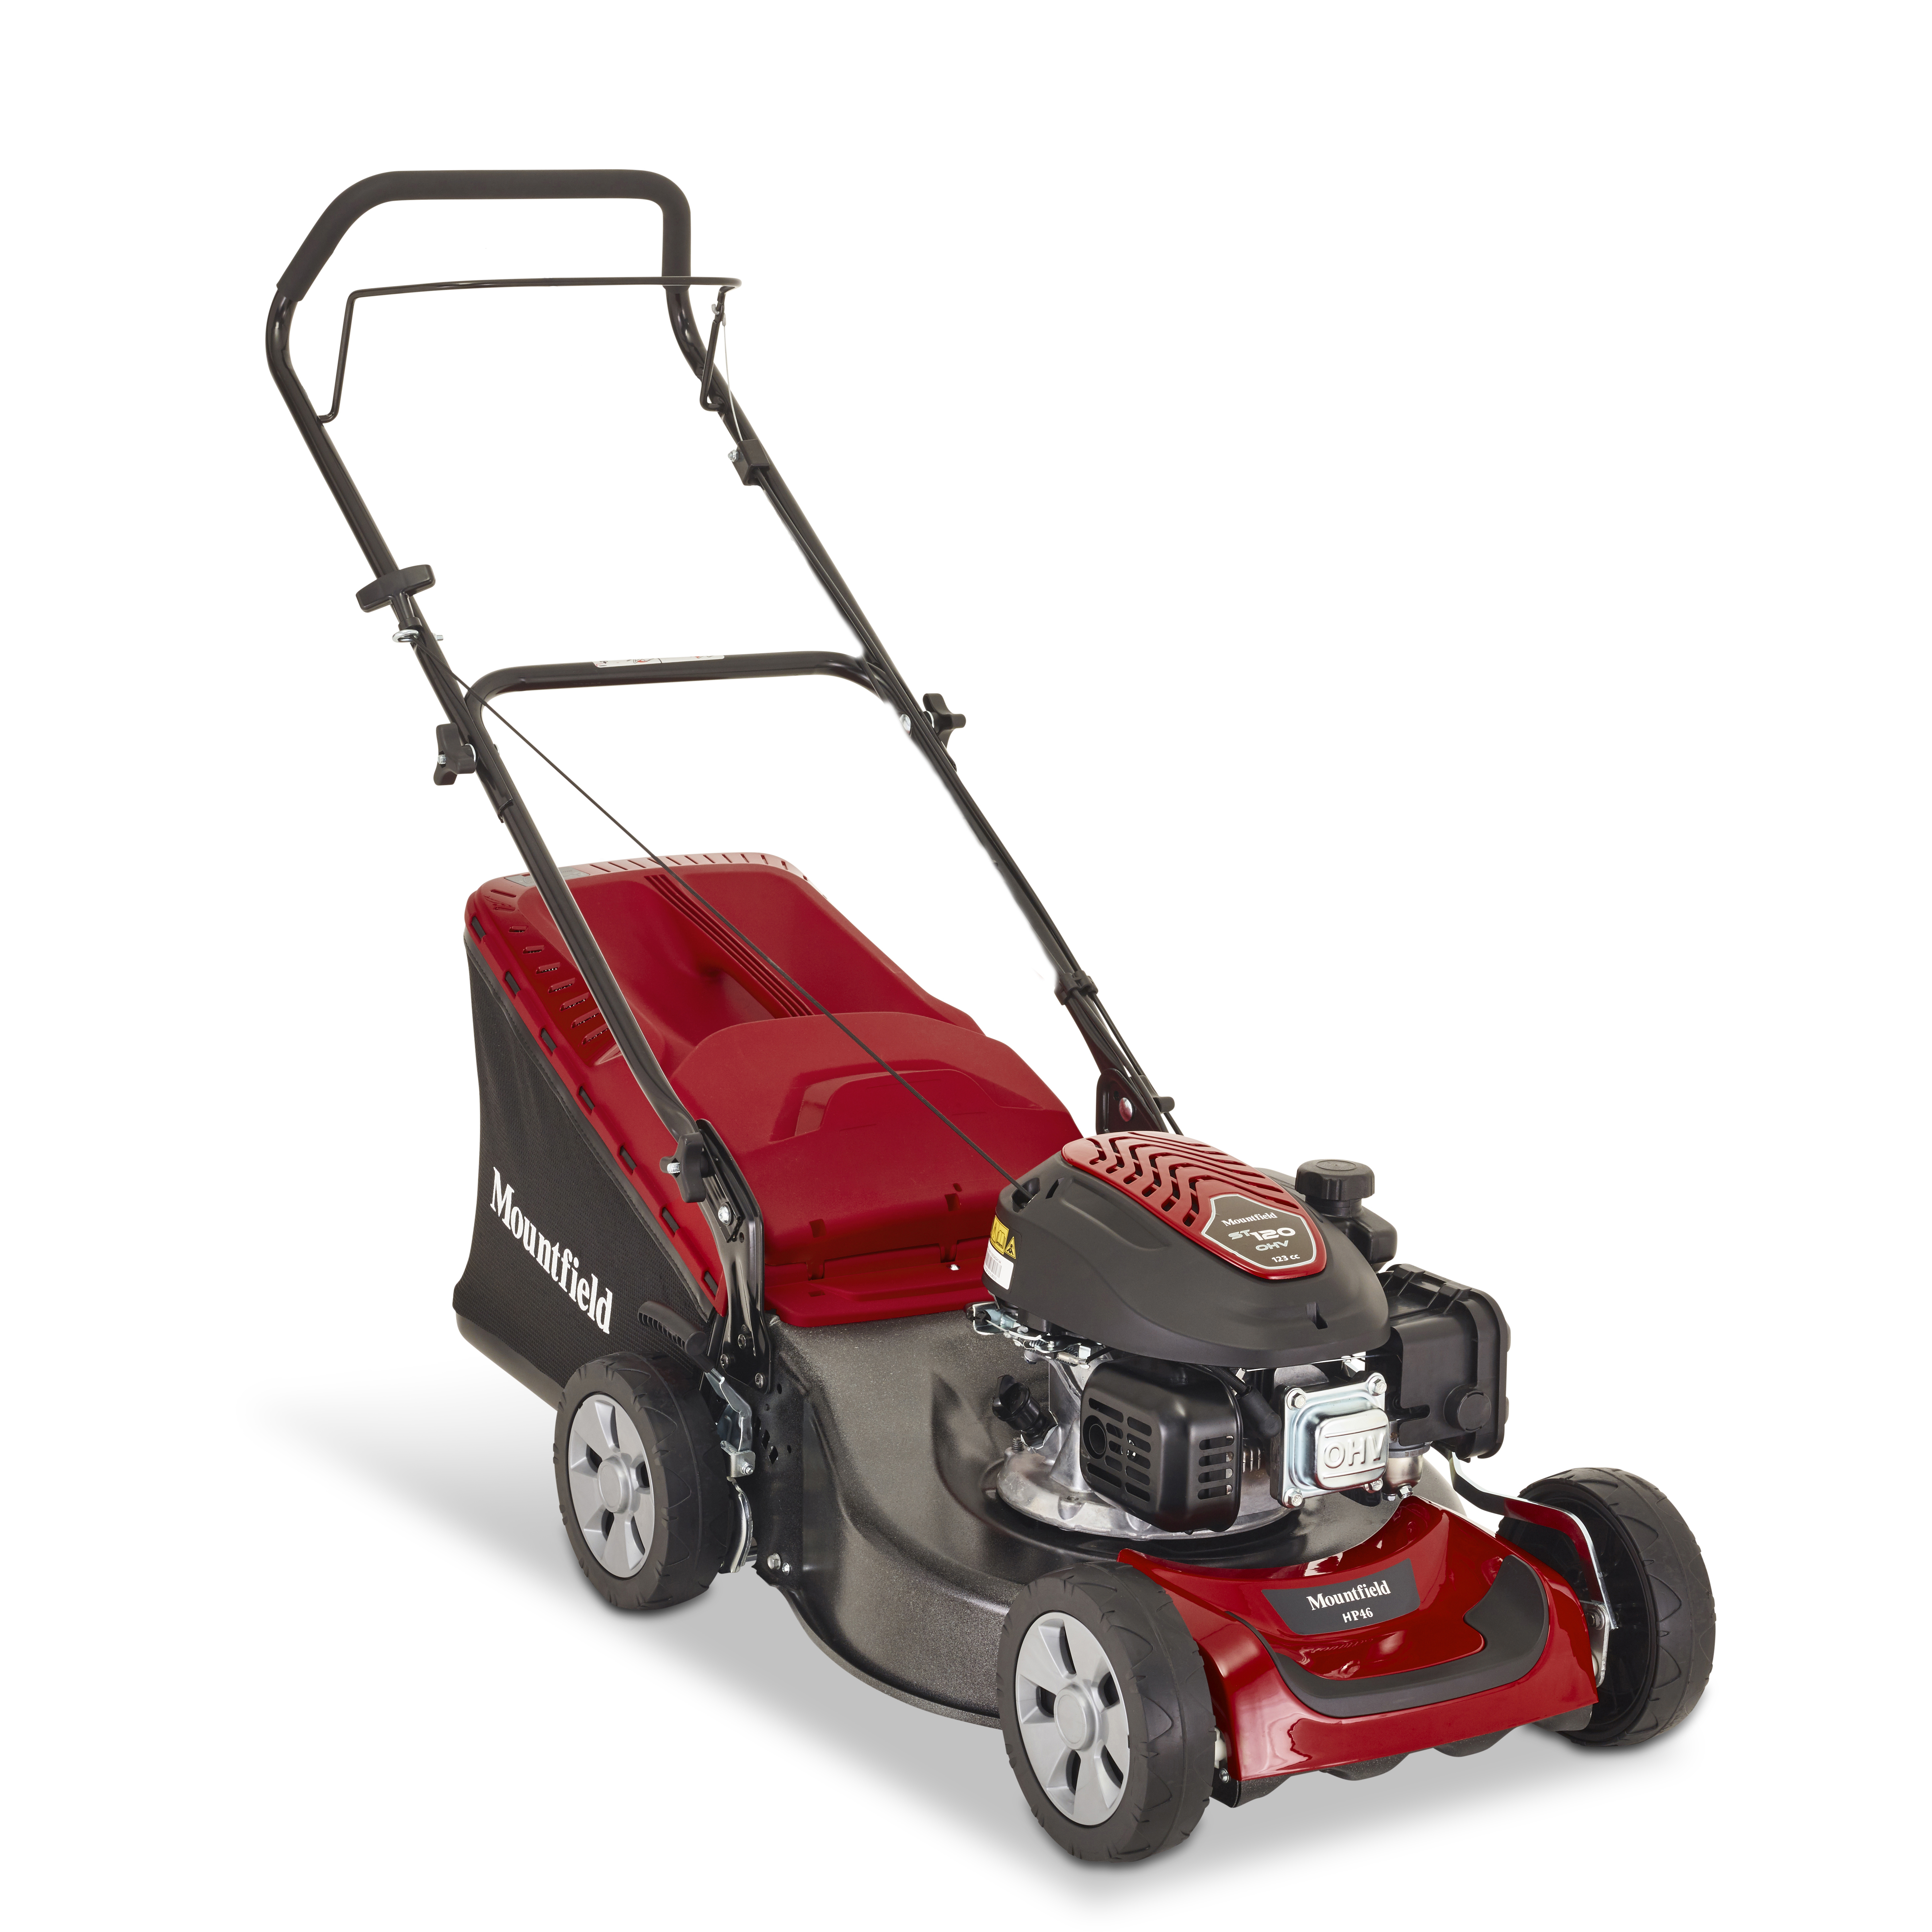 MOUNTFIELD HP46 Petrol Lawnmower